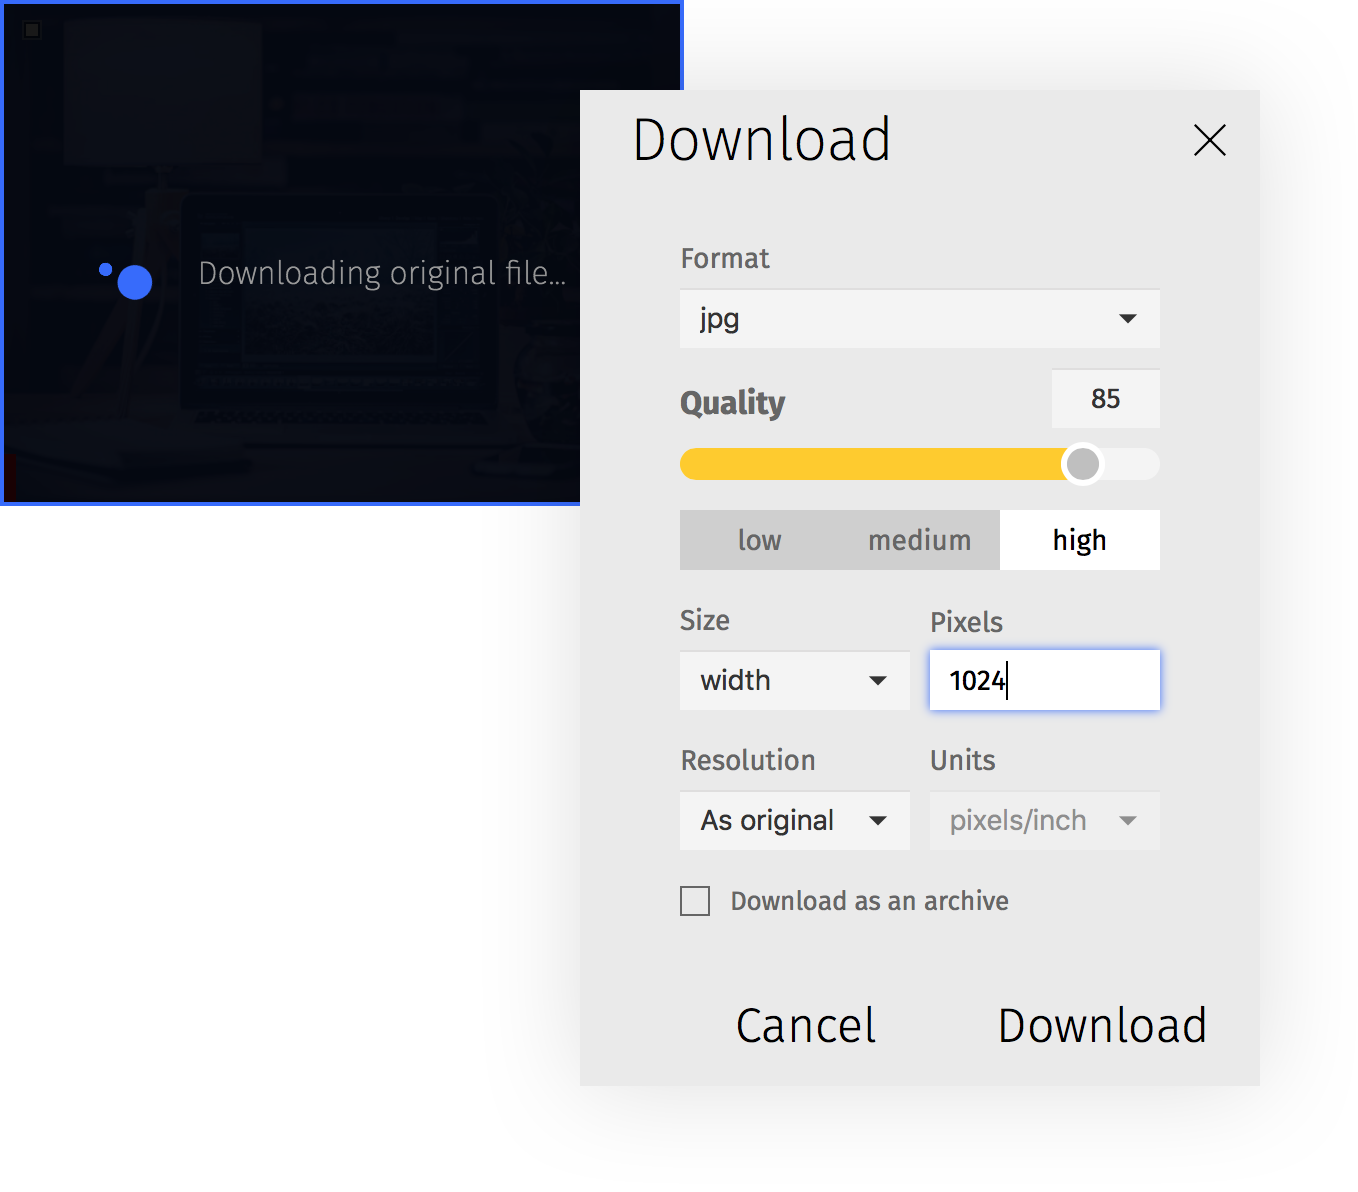 Choose the size of the image you want to download